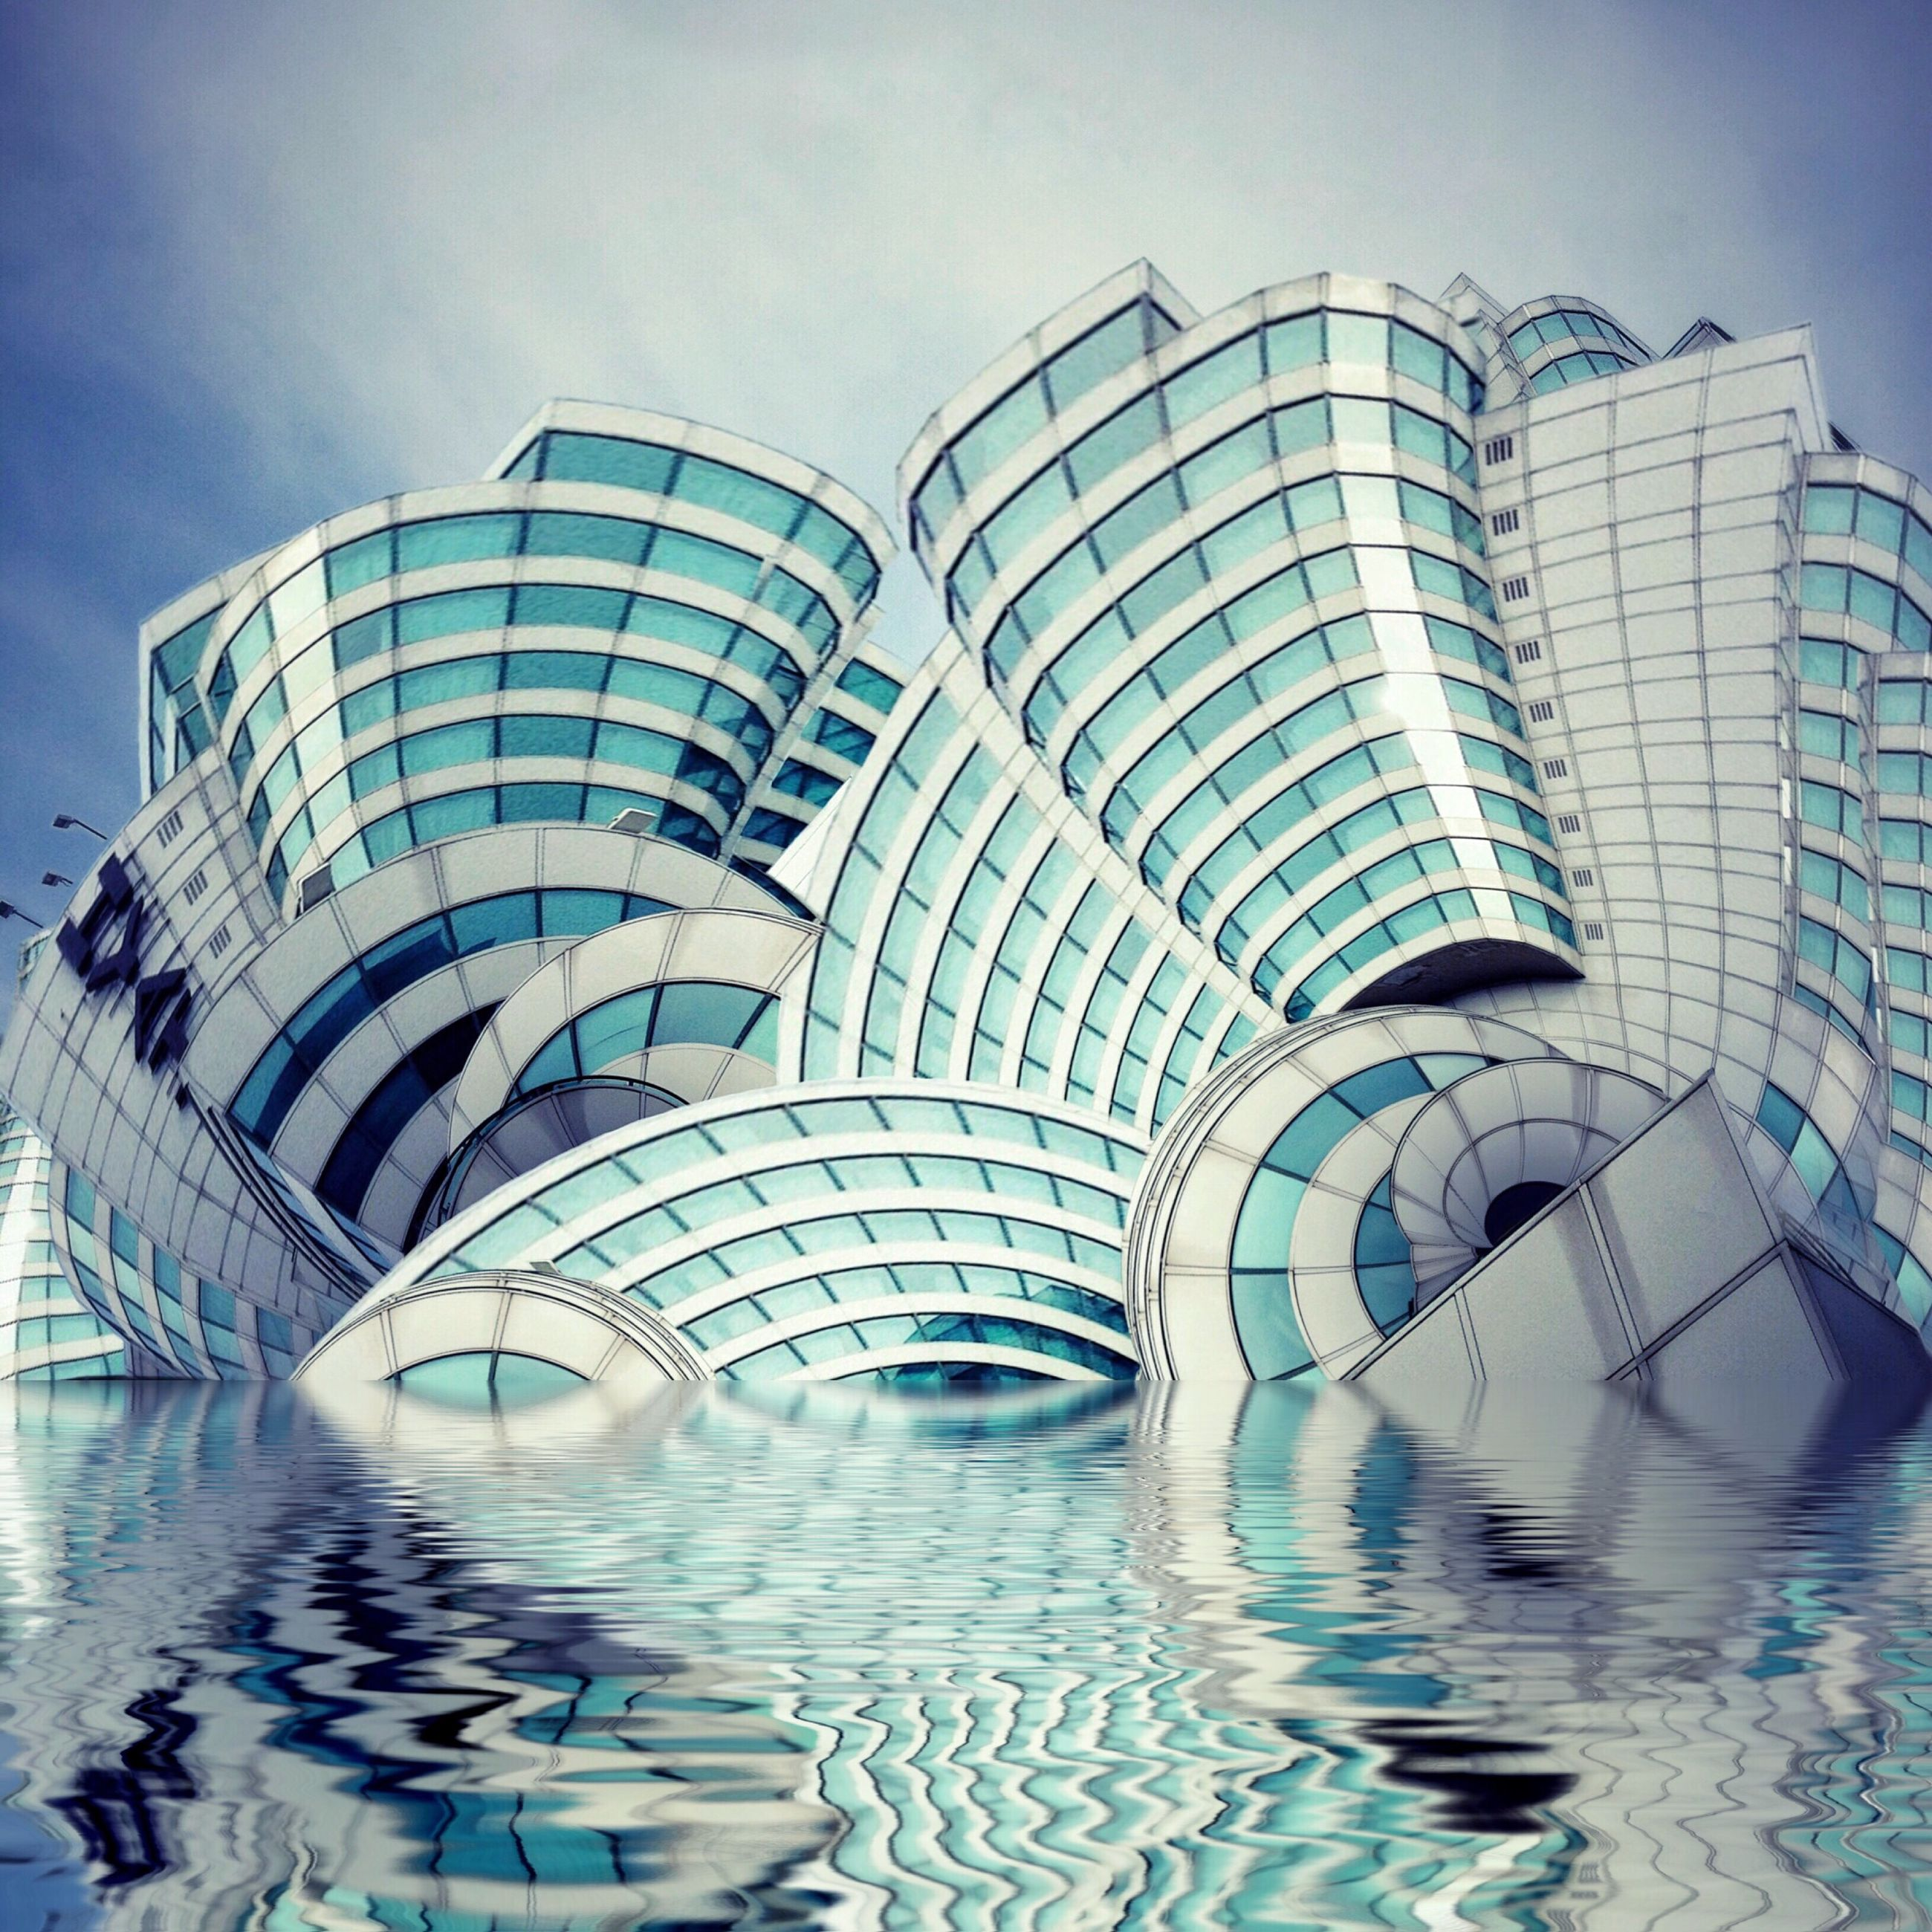 architecture, built structure, building exterior, water, reflection, modern, sky, city, building, blue, day, glass - material, travel destinations, sunlight, office building, outdoors, famous place, pattern, no people, capital cities